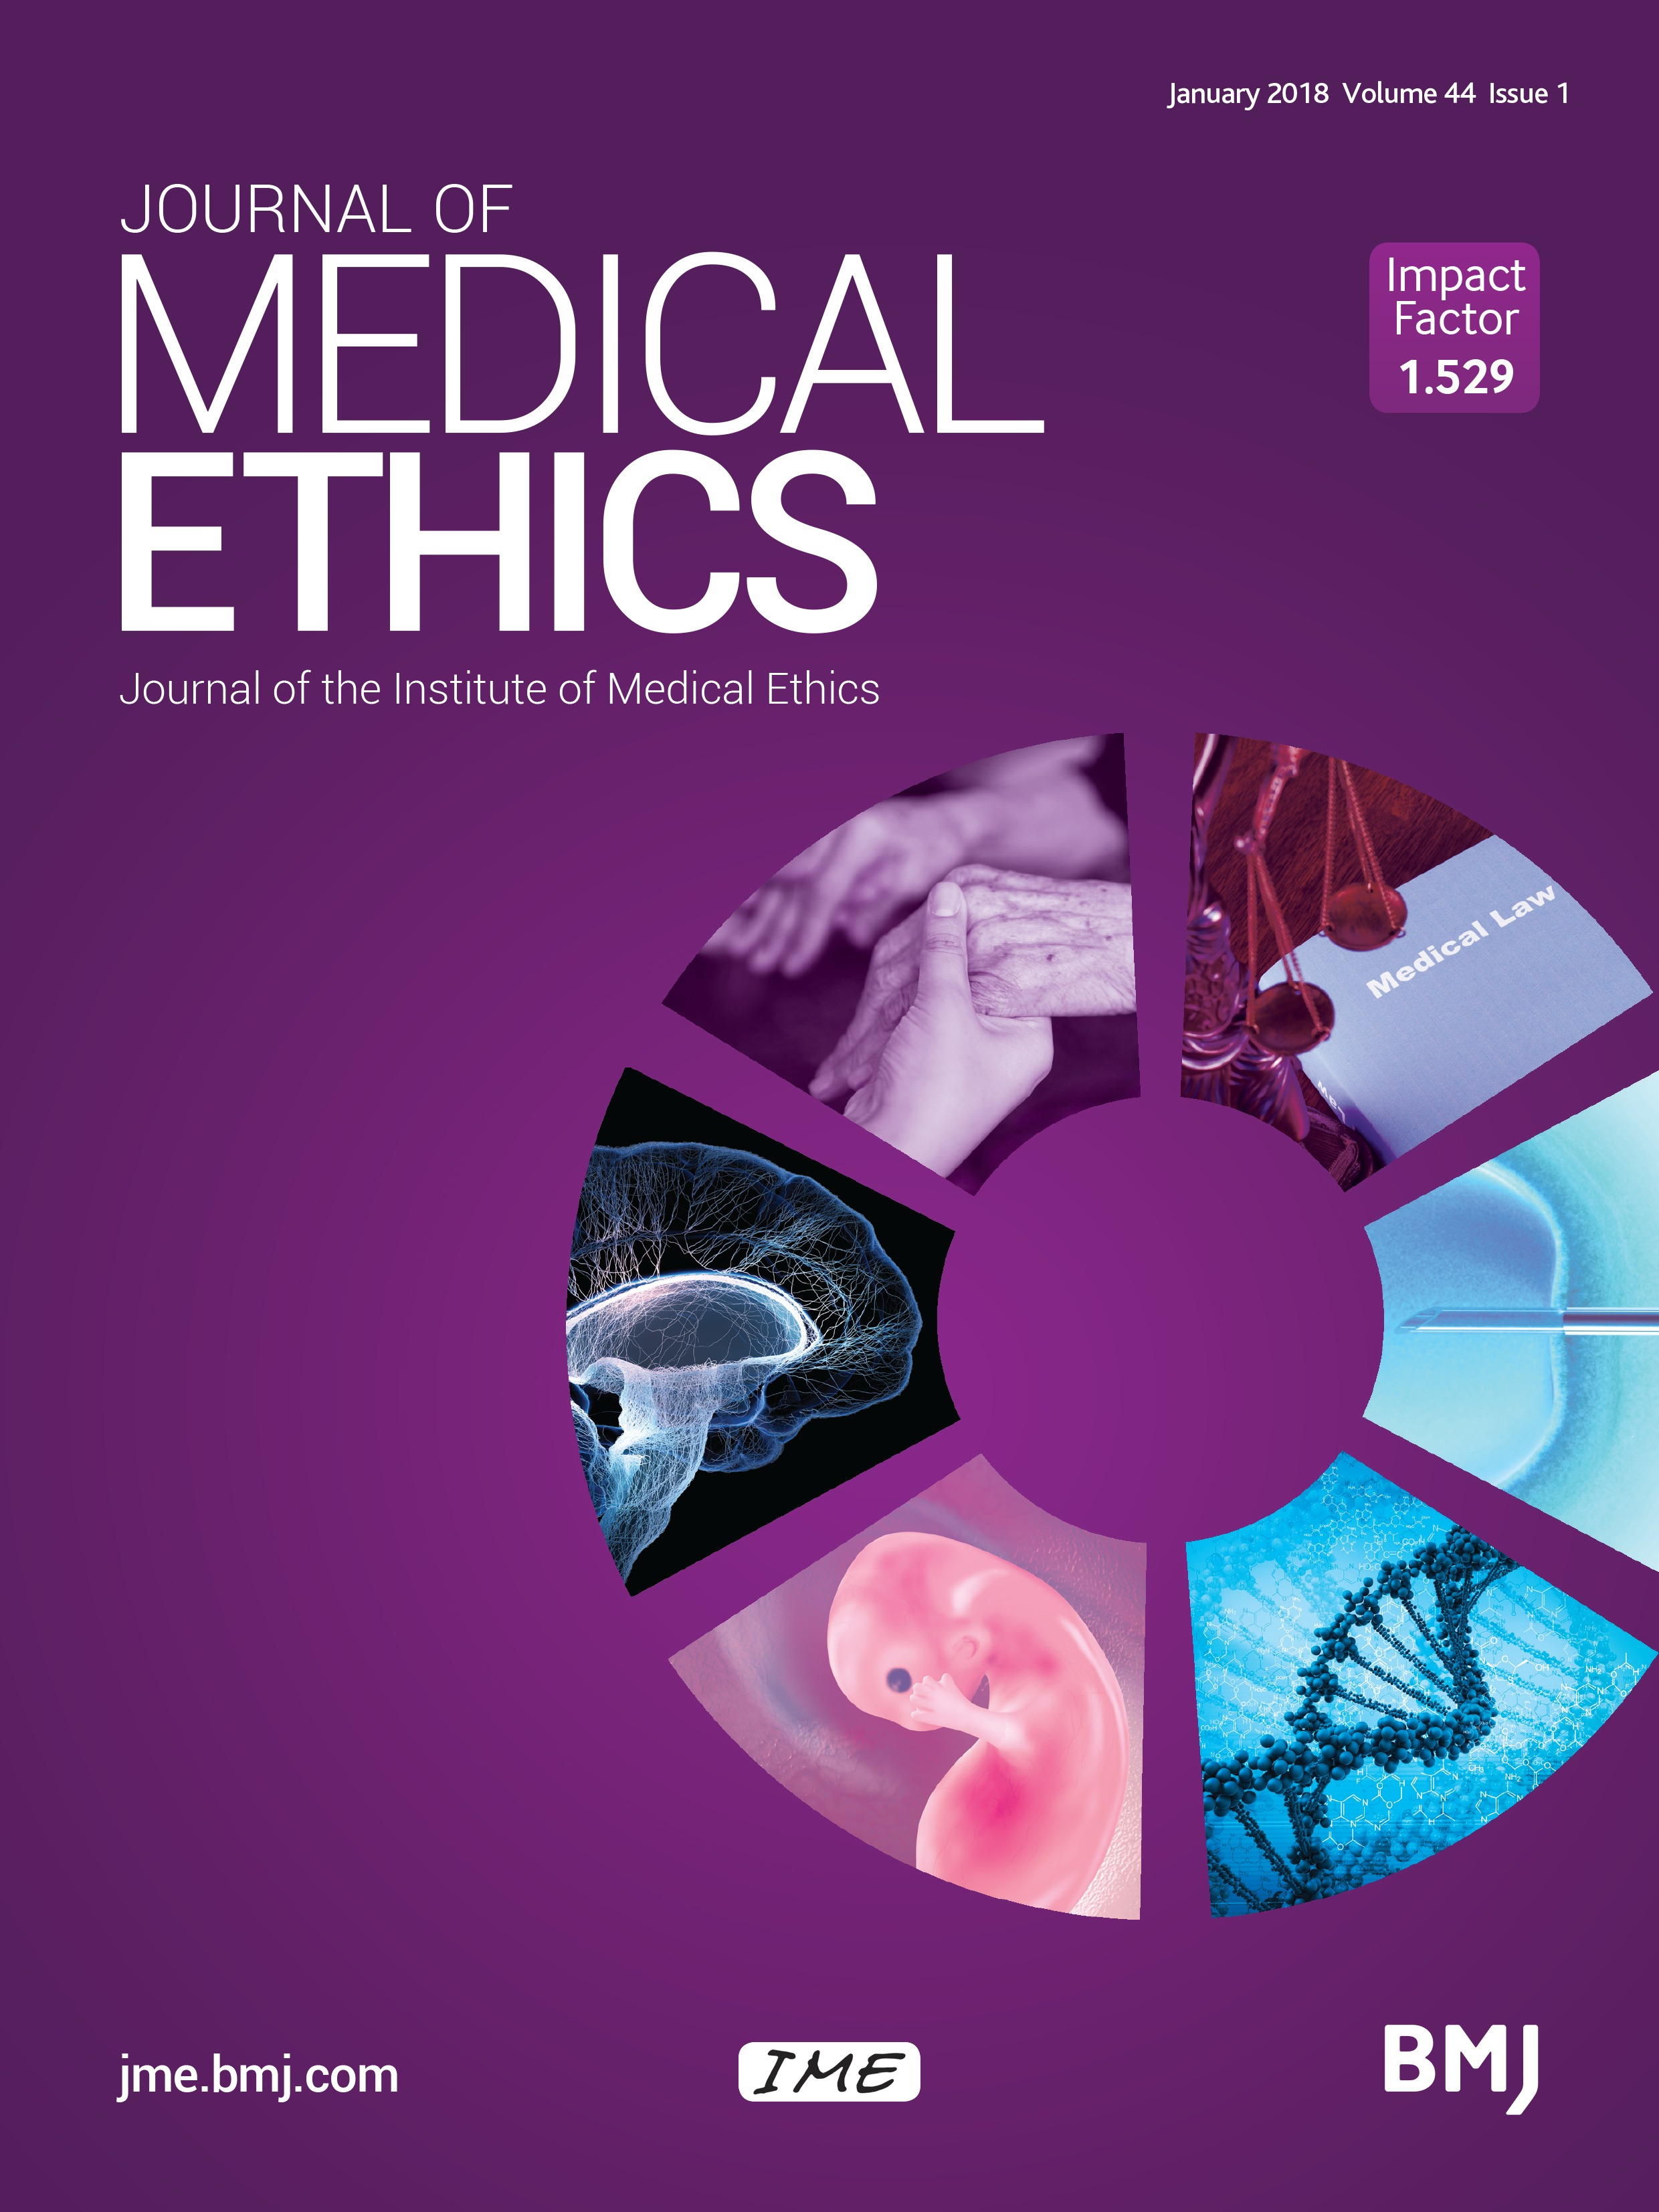 The Ebola clinical trials: a precedent for research ethics